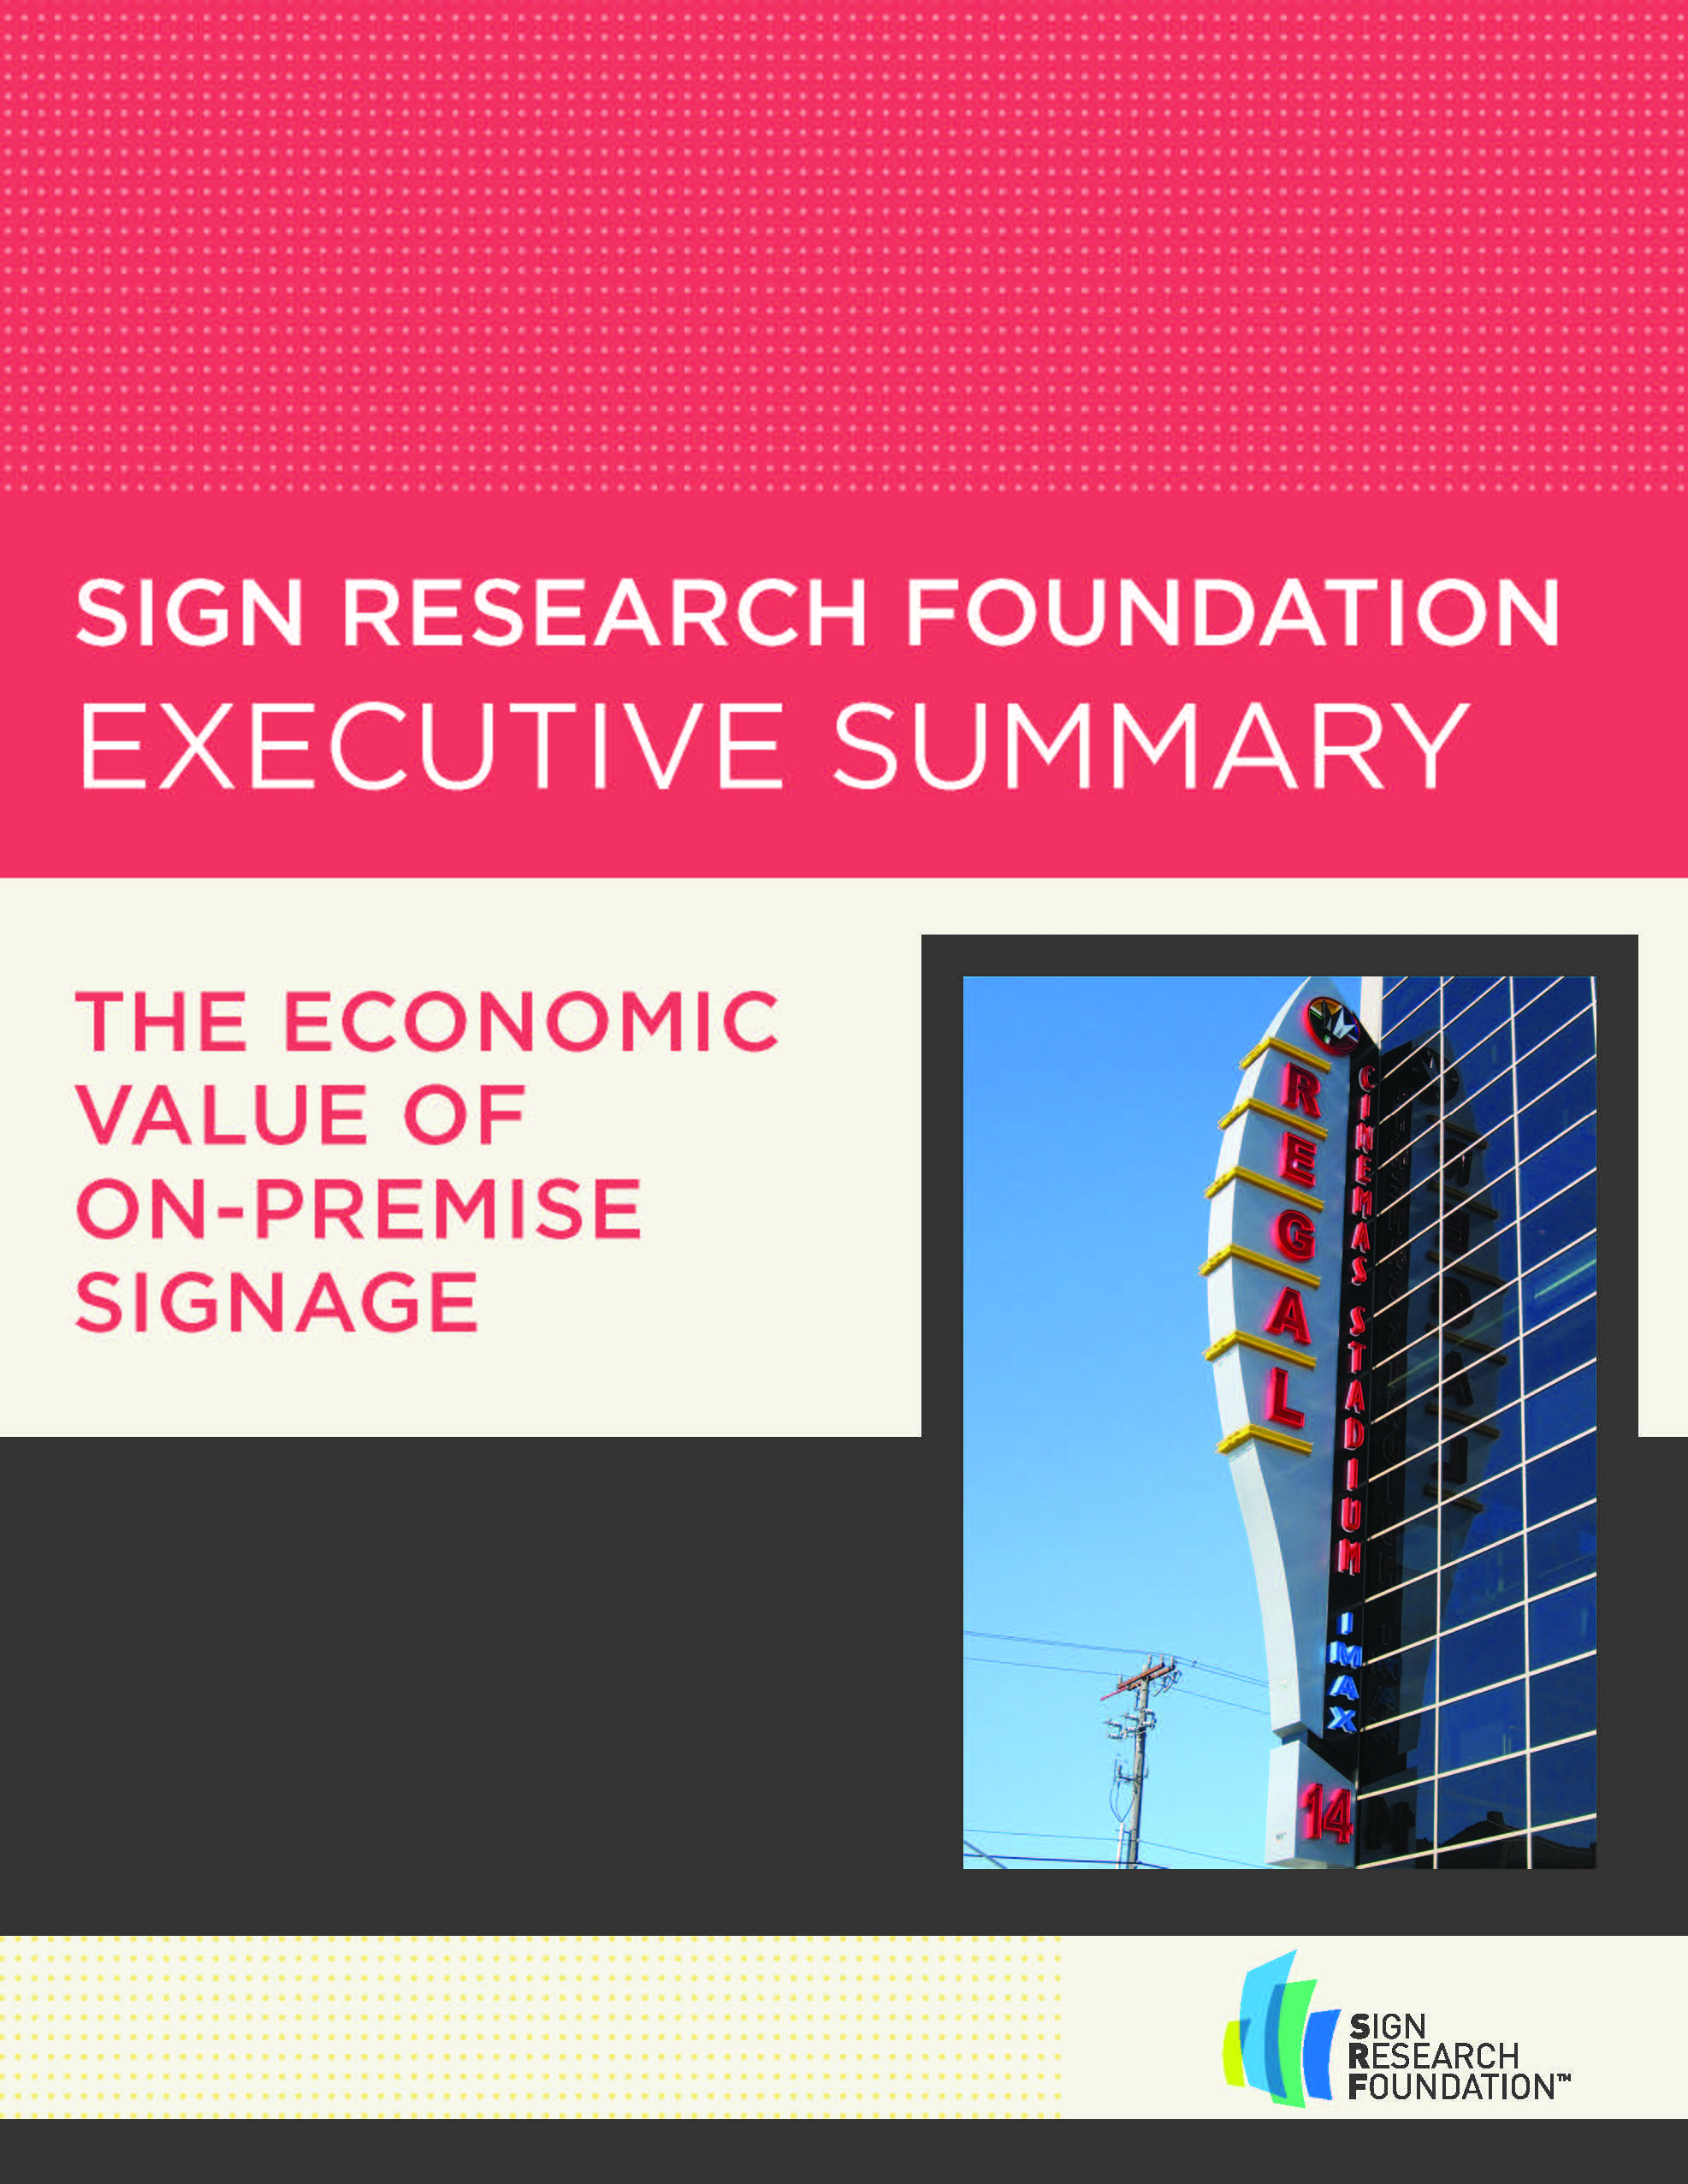 Executive Summary: The Economic Value of On-Premise Signage